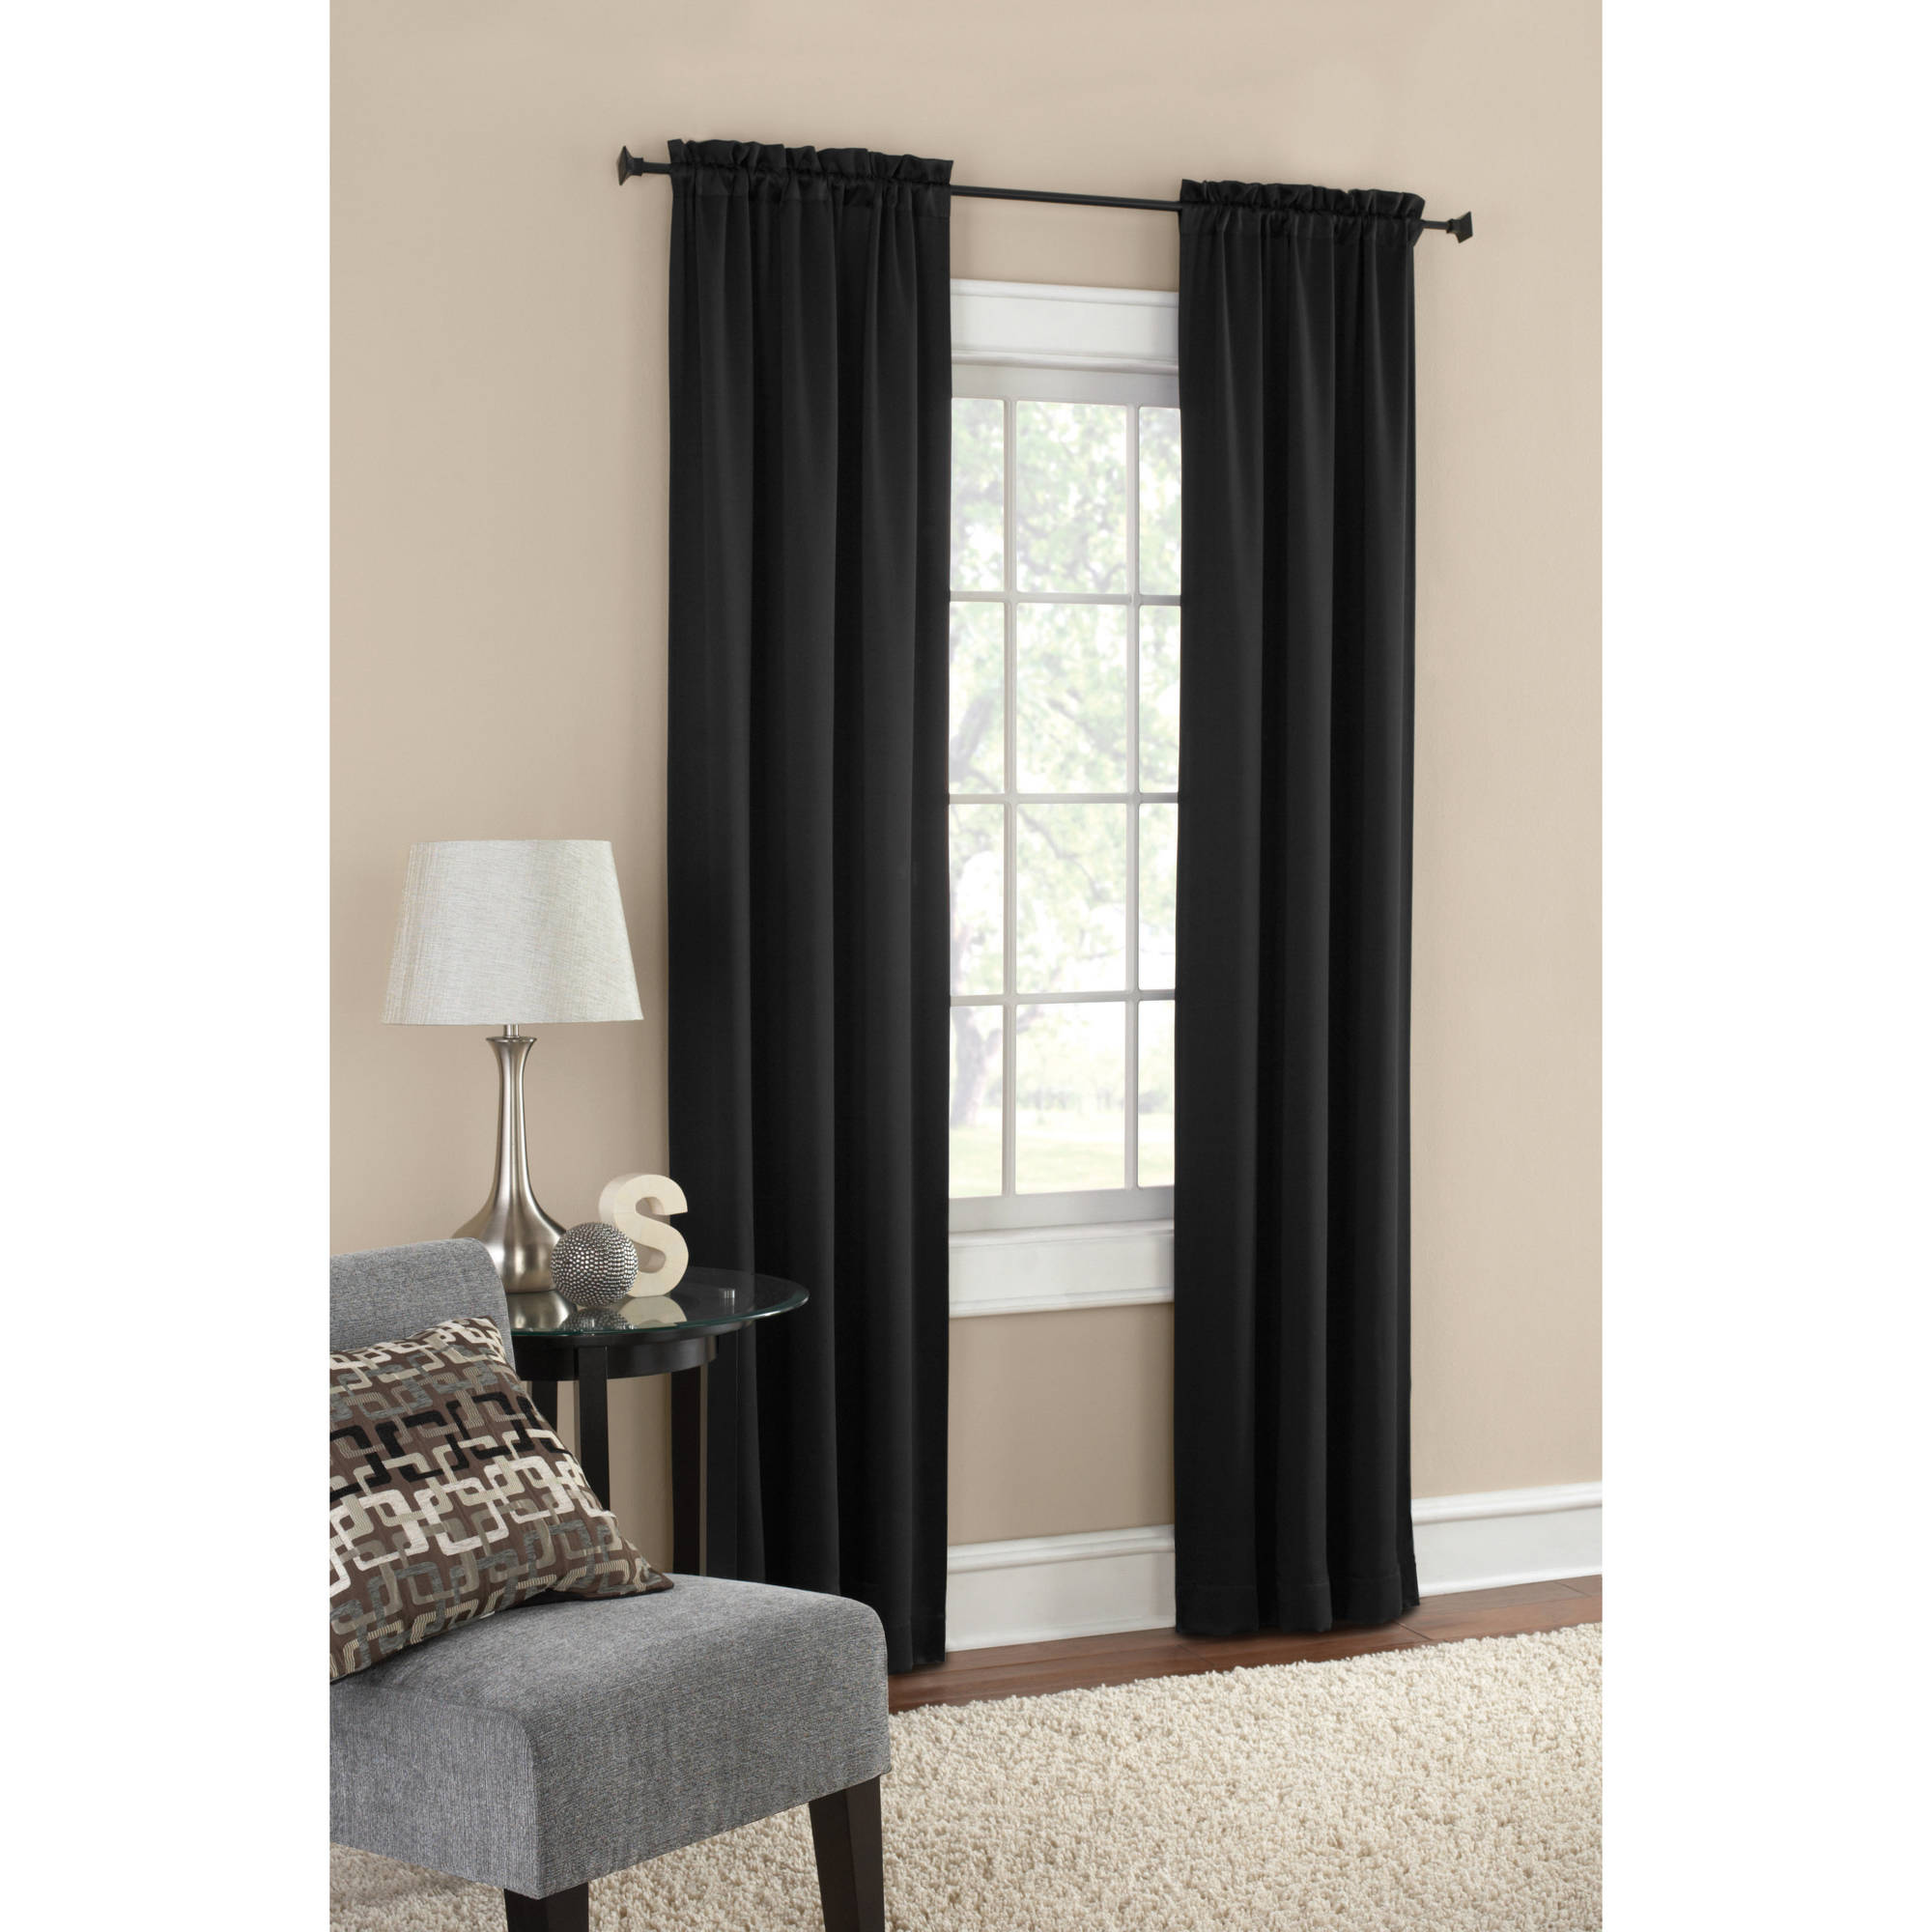 Black out curtains elegant valance curtains beaded valance curtains - Mainstays Blackout Solid Woven Window Curtains Set Of 2